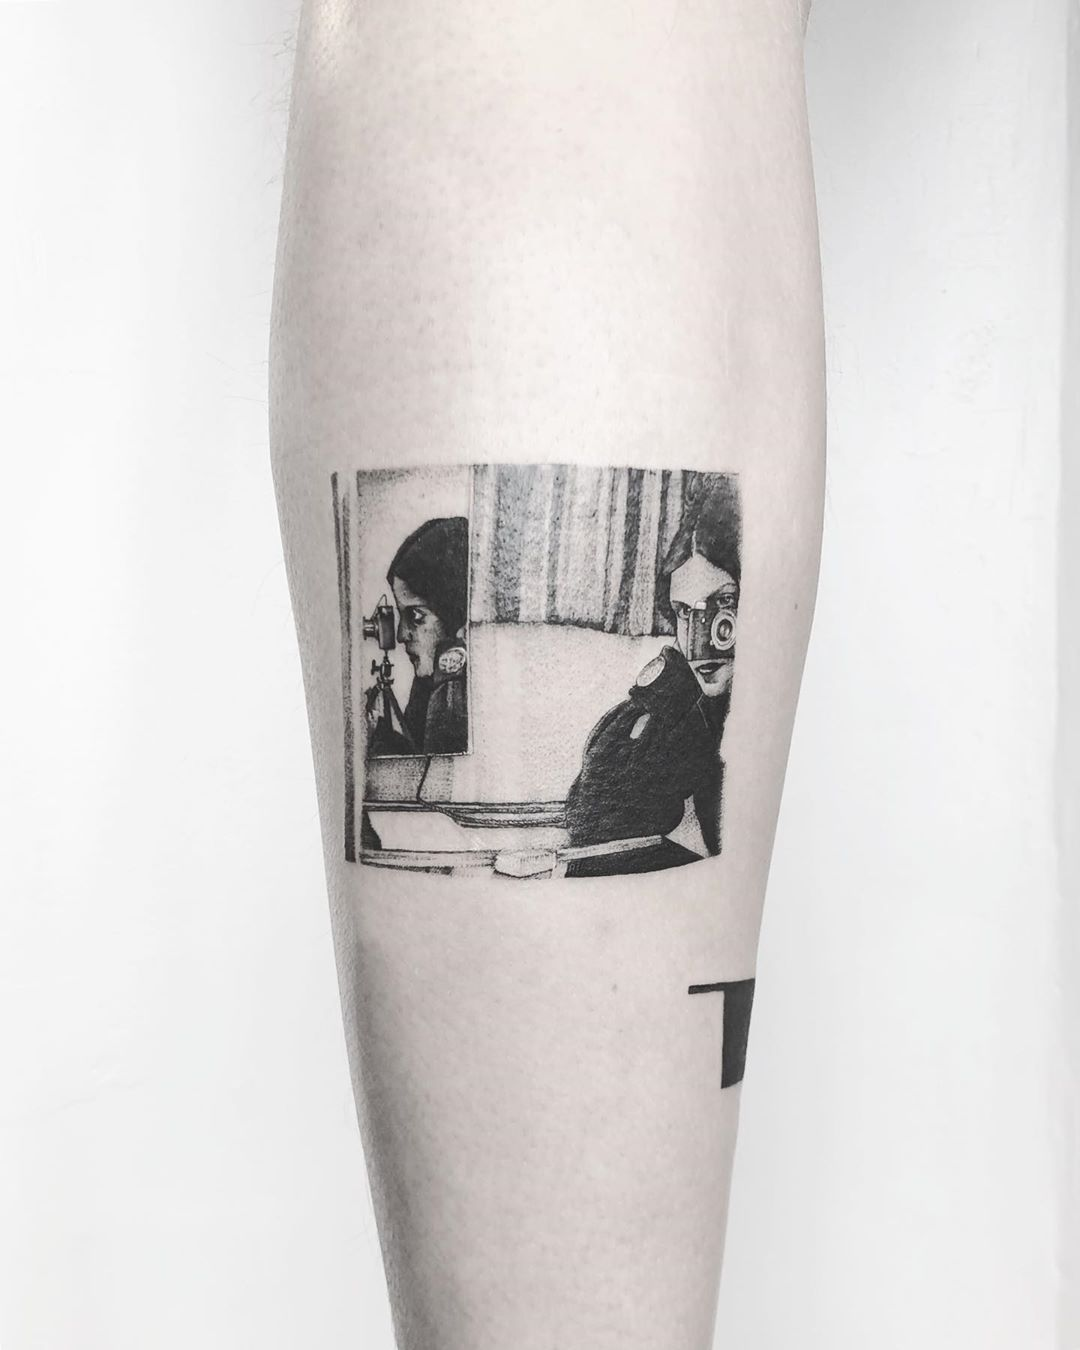 Self-portrait tattoo by Annelie Fransson